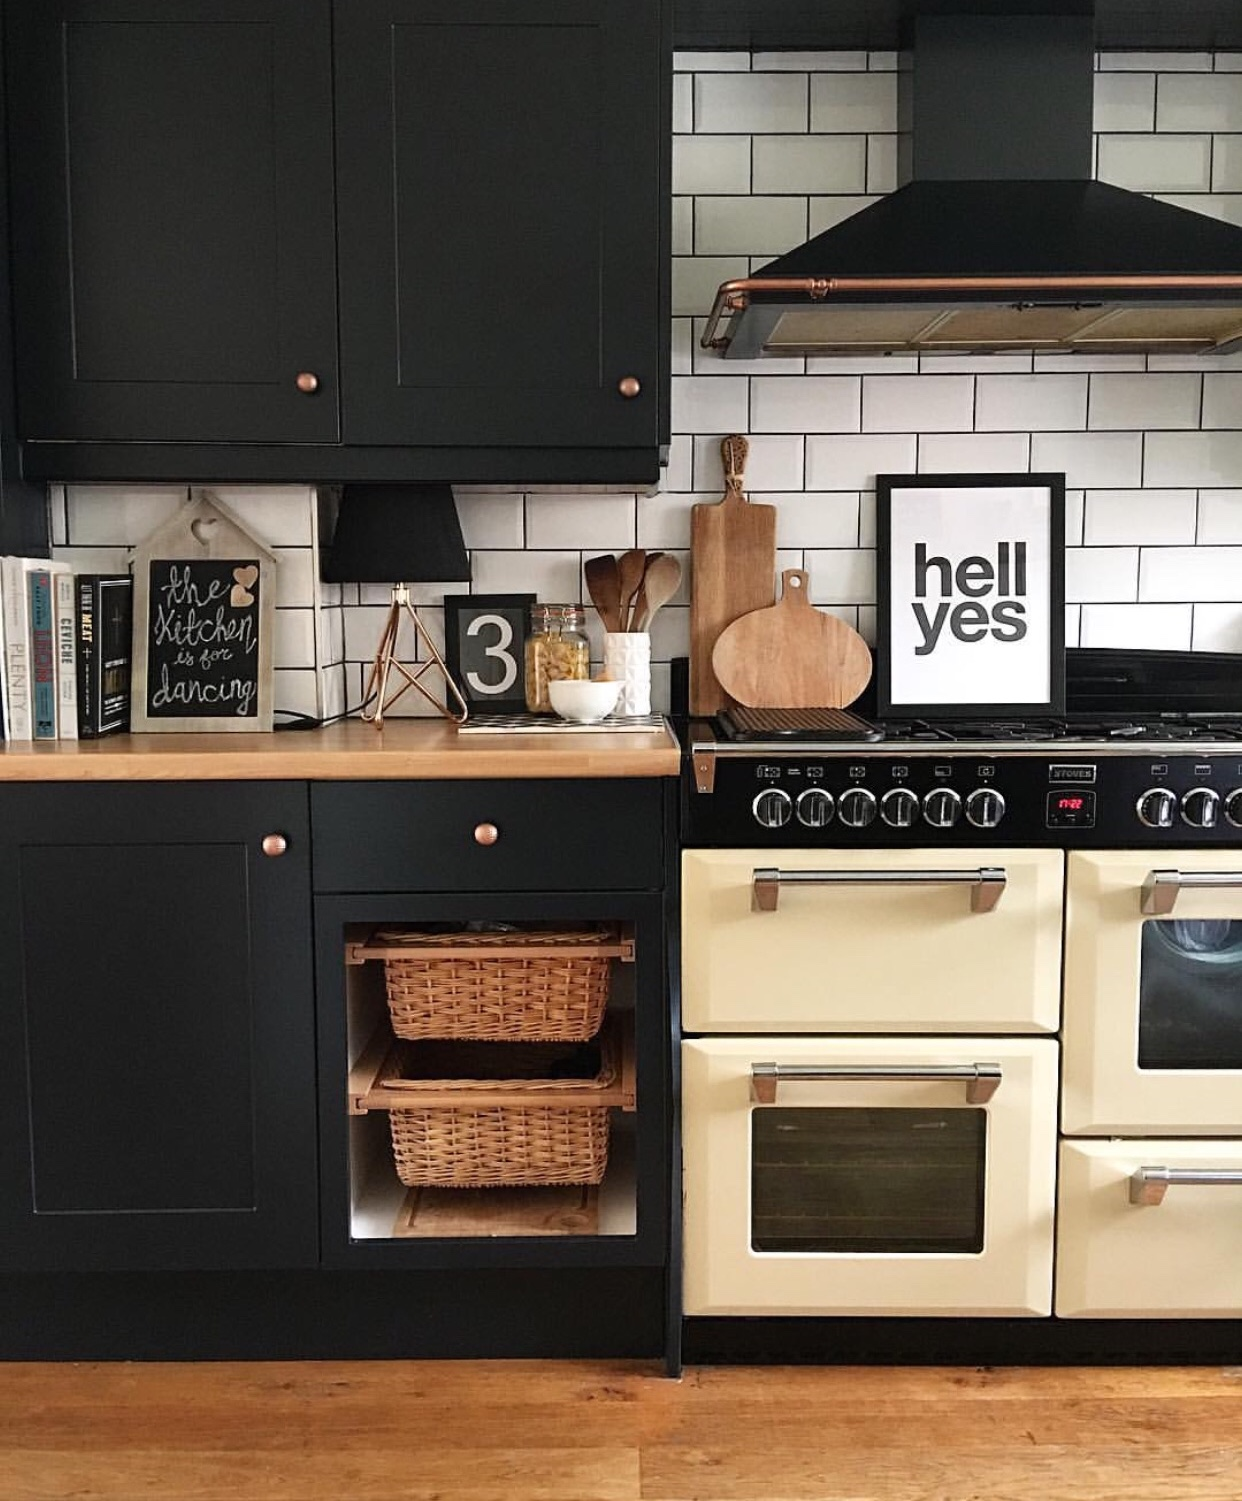 Kitchen:'hell yes print' - Gayle Mansfield Designs, Units painted in Farrow and Ball's Railings